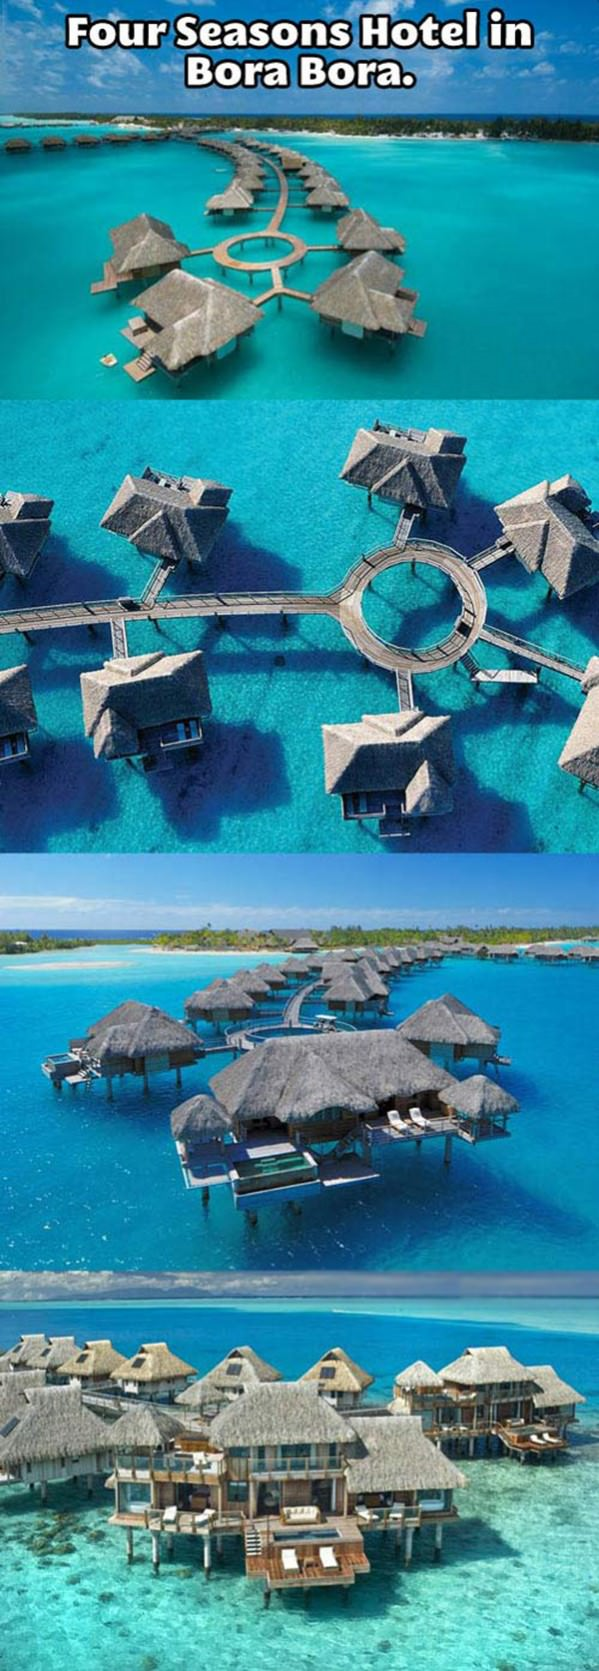 Four Seasons Bora Bora funny picture